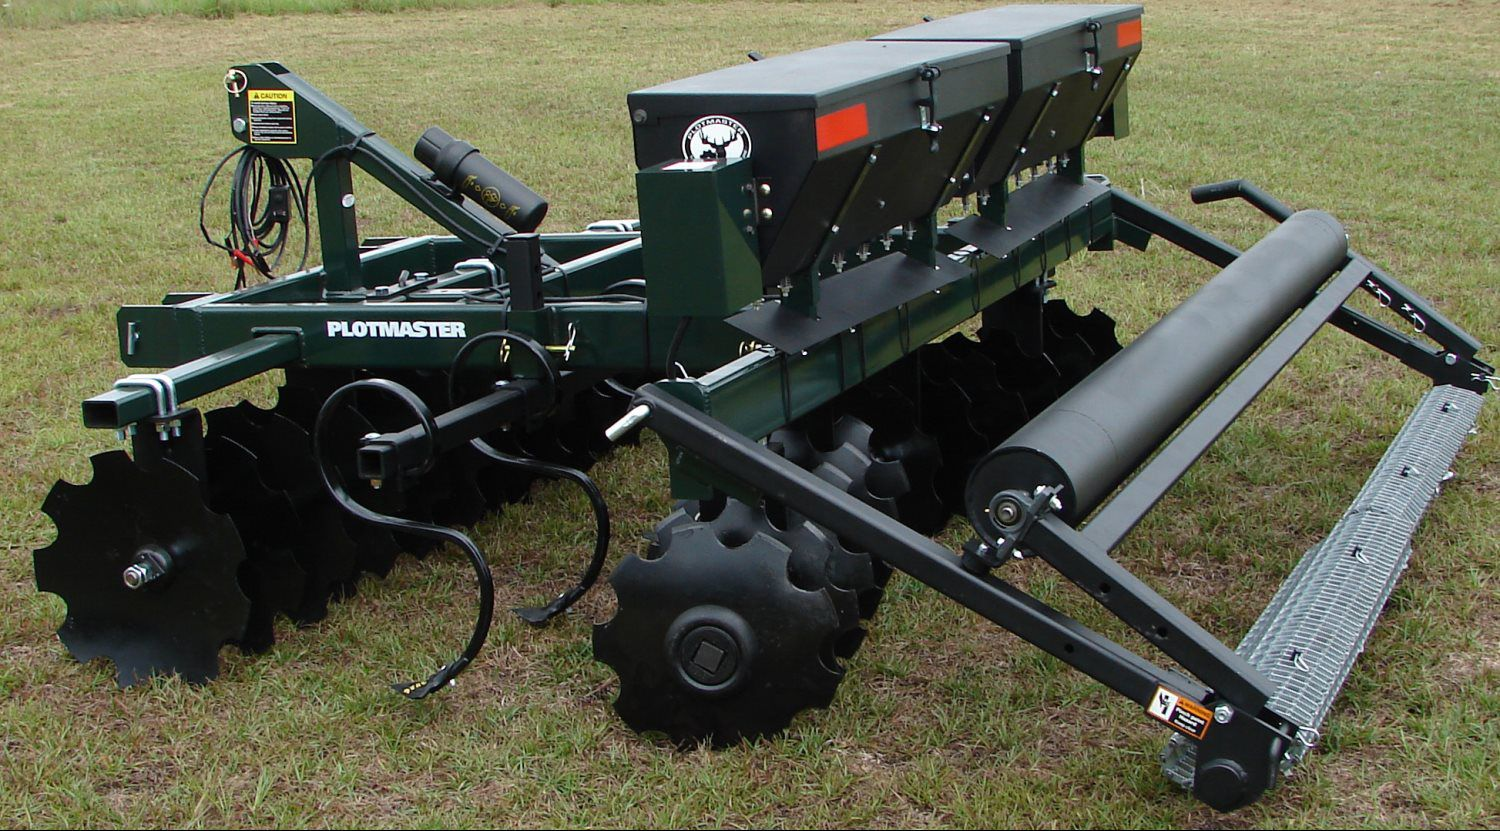 Tractor Implements And Attachments : Food plot tractor tillage equipment implements for sale